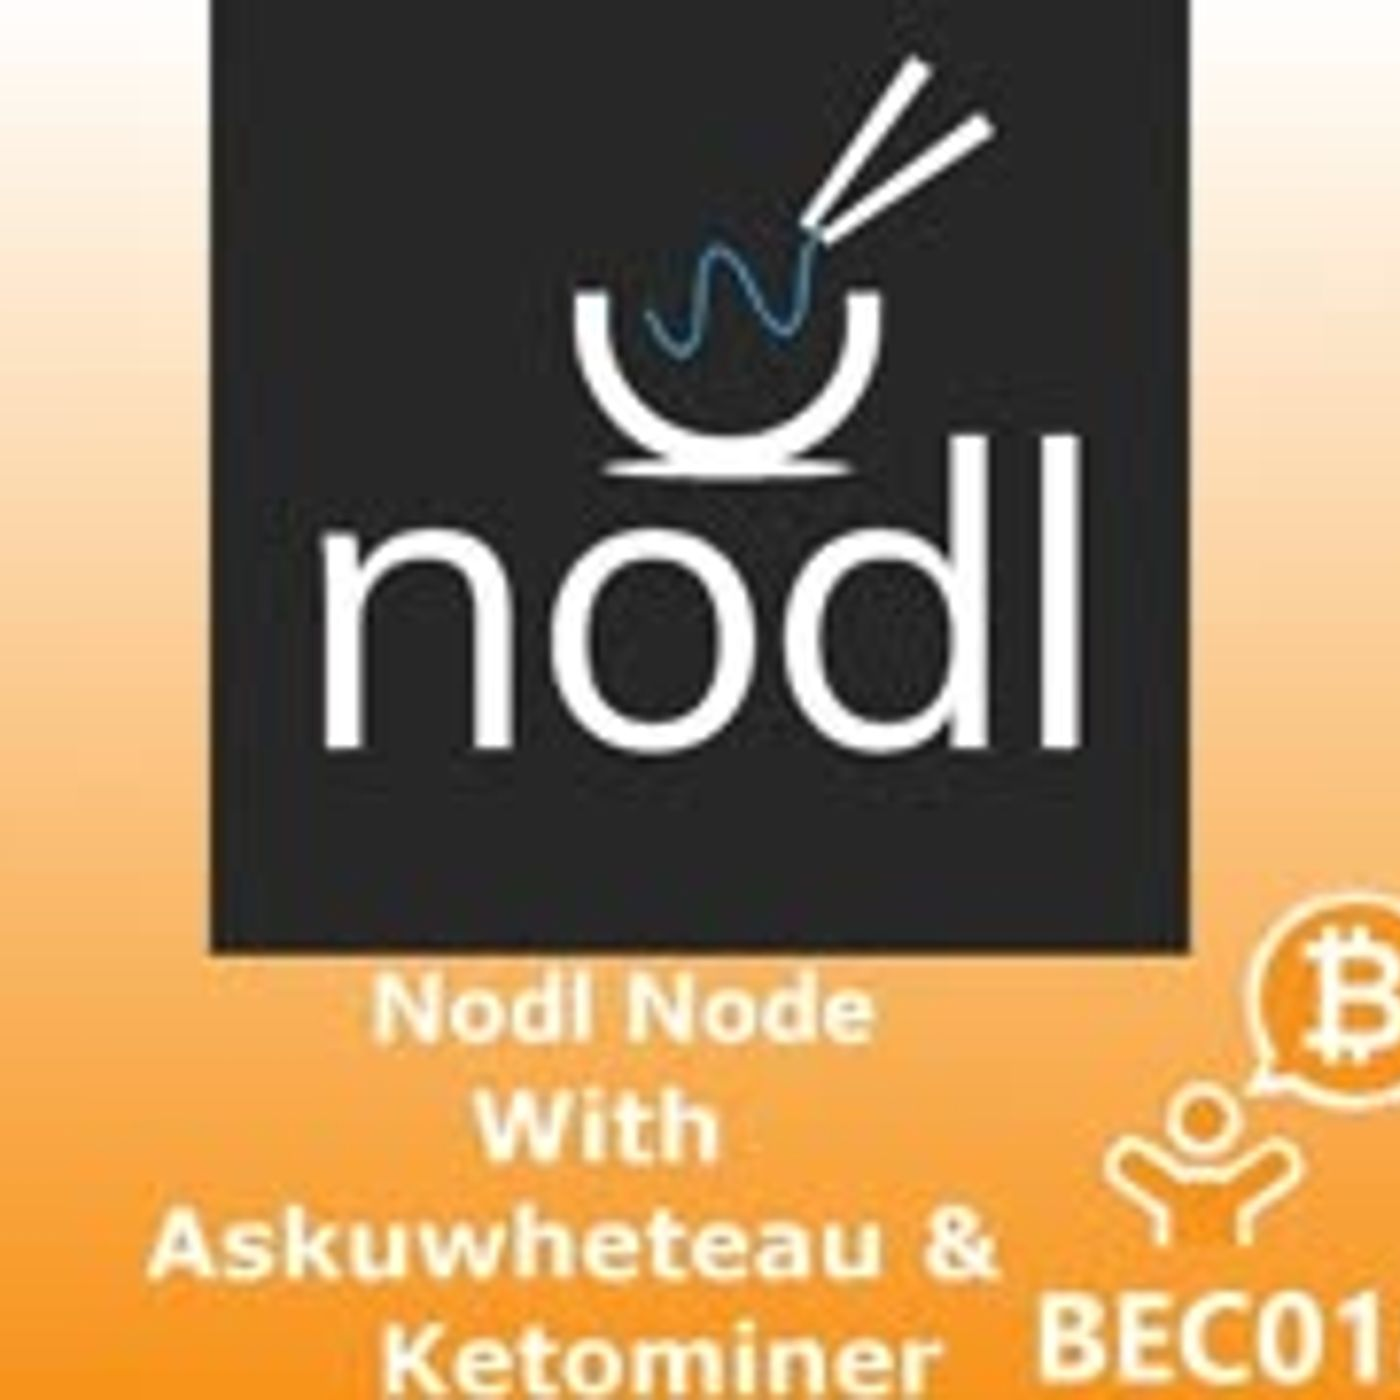 Nodl Node with Askuwheteau and Ketominer BEC018